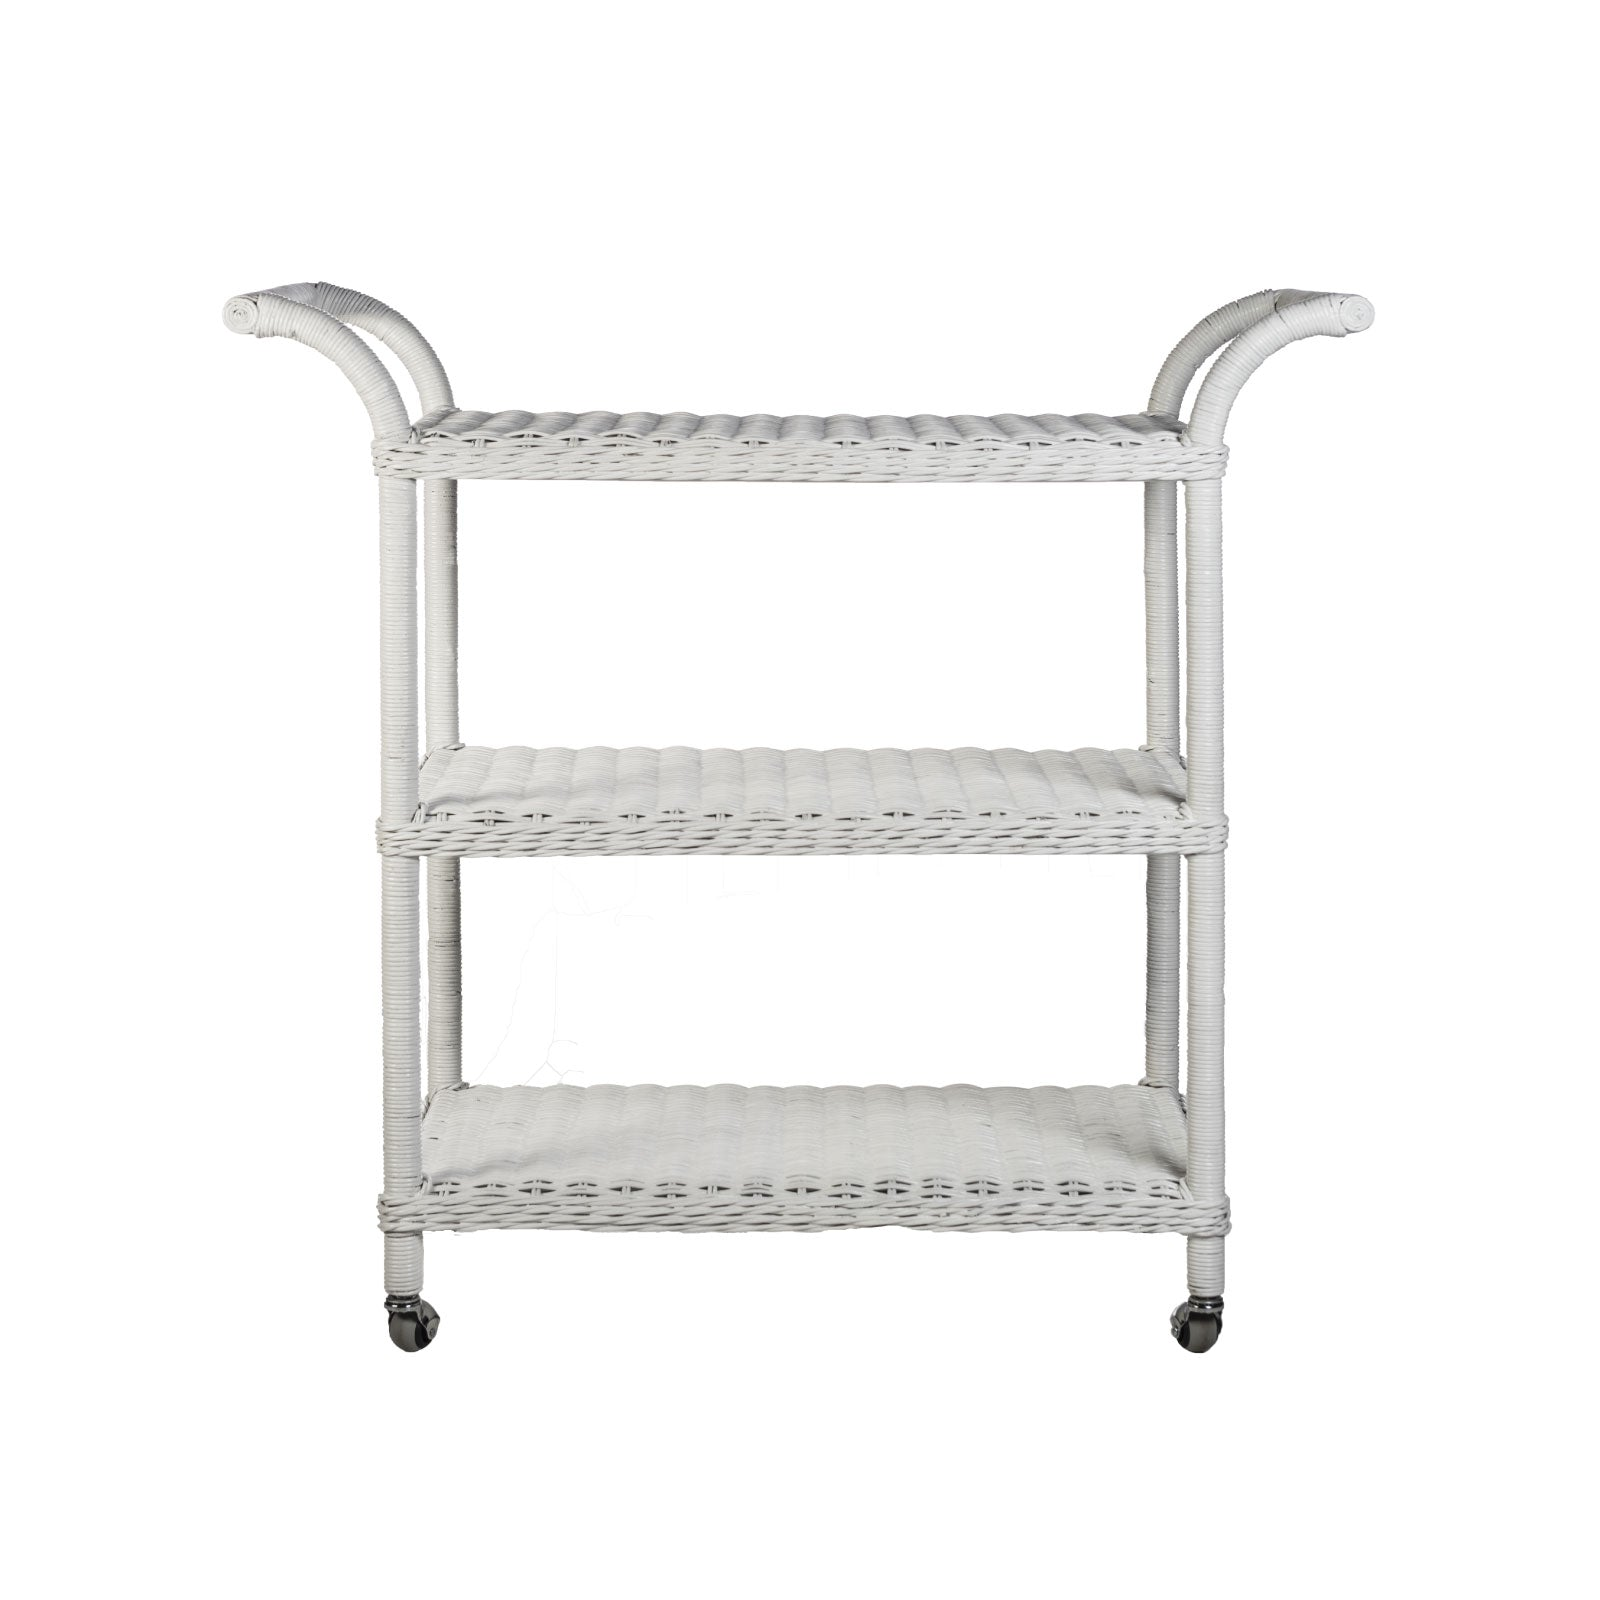 Charlotte Bar Cart in White Wicker